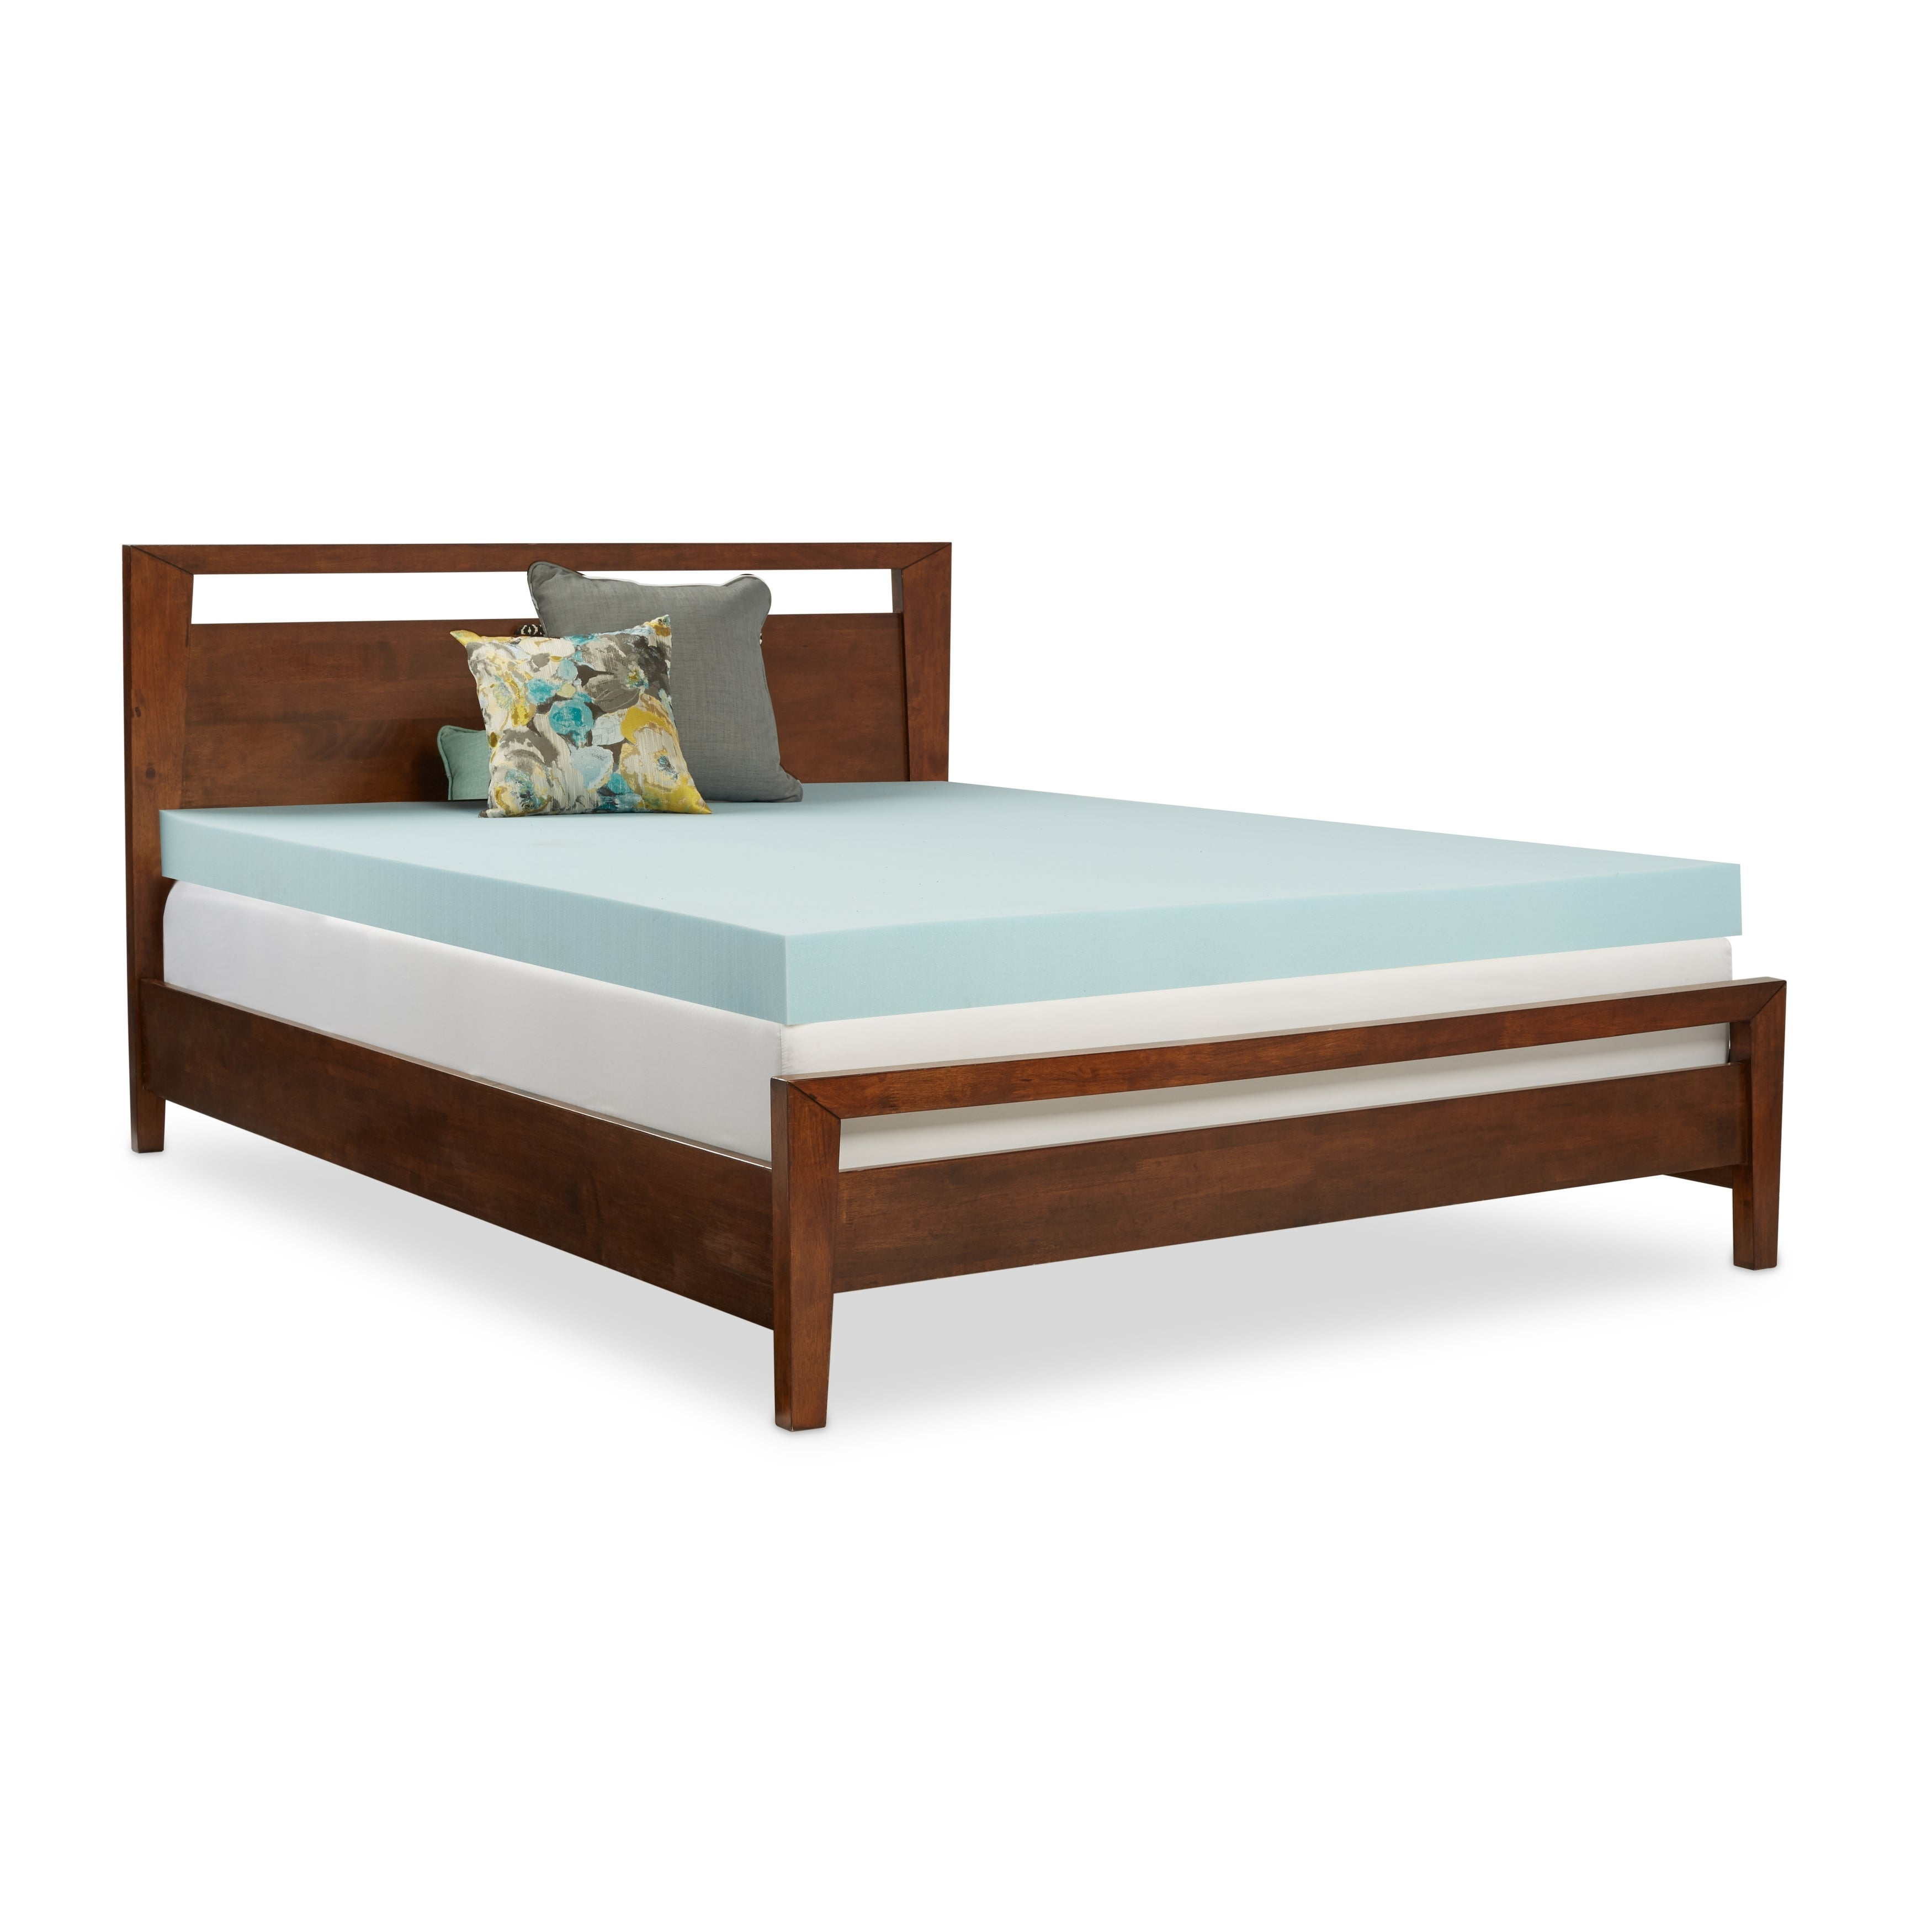 best tri soft twin non customer foam fold com ultra helpful inch bottom with mattress bed amazon mattresses memory rated slip dreamfoam in cover removable reviews bedding pcr milliard